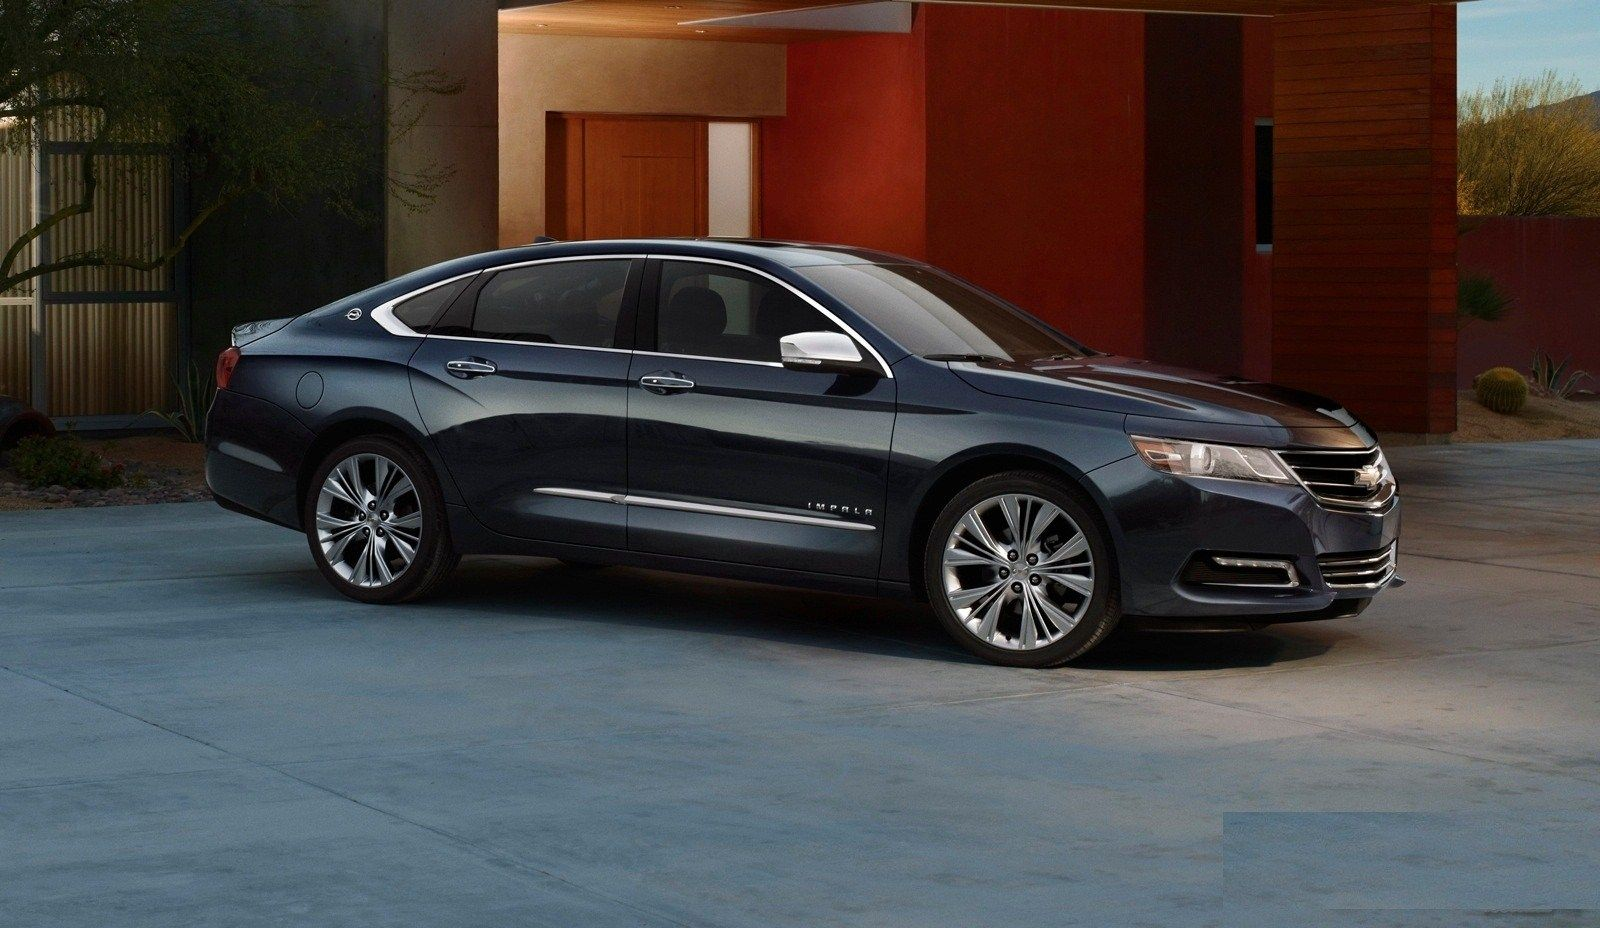 hight resolution of images of 2015 impala chevrolet 2013 chevy impala